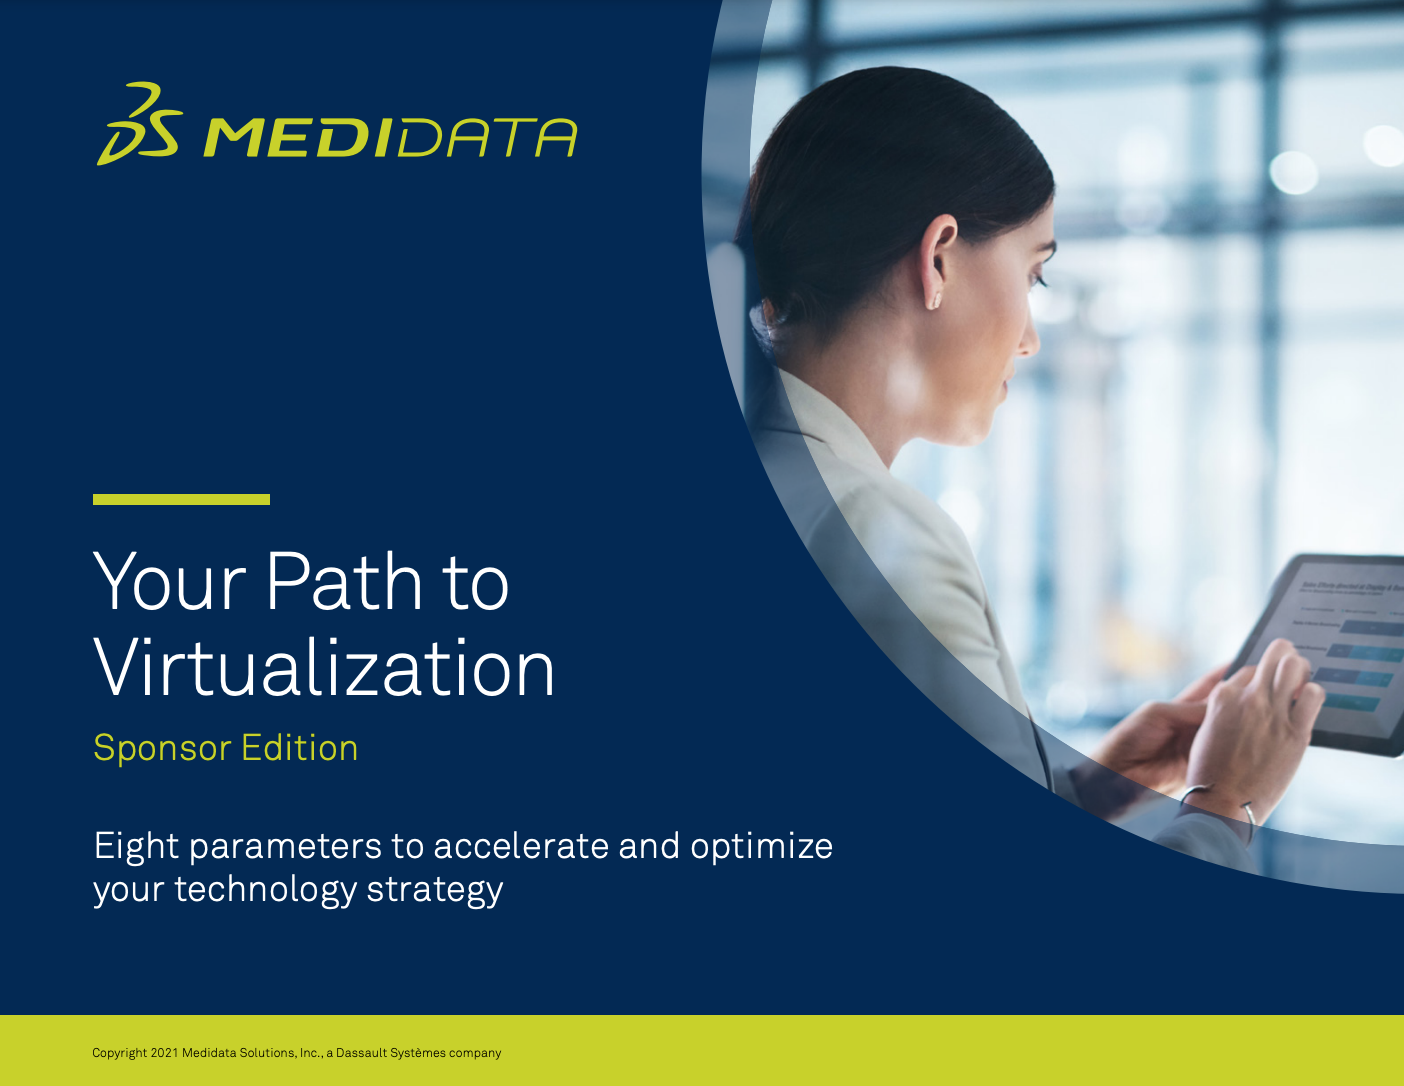 <strong>Your Path to Trial Virtualization</strong><br>Sponsor Edition